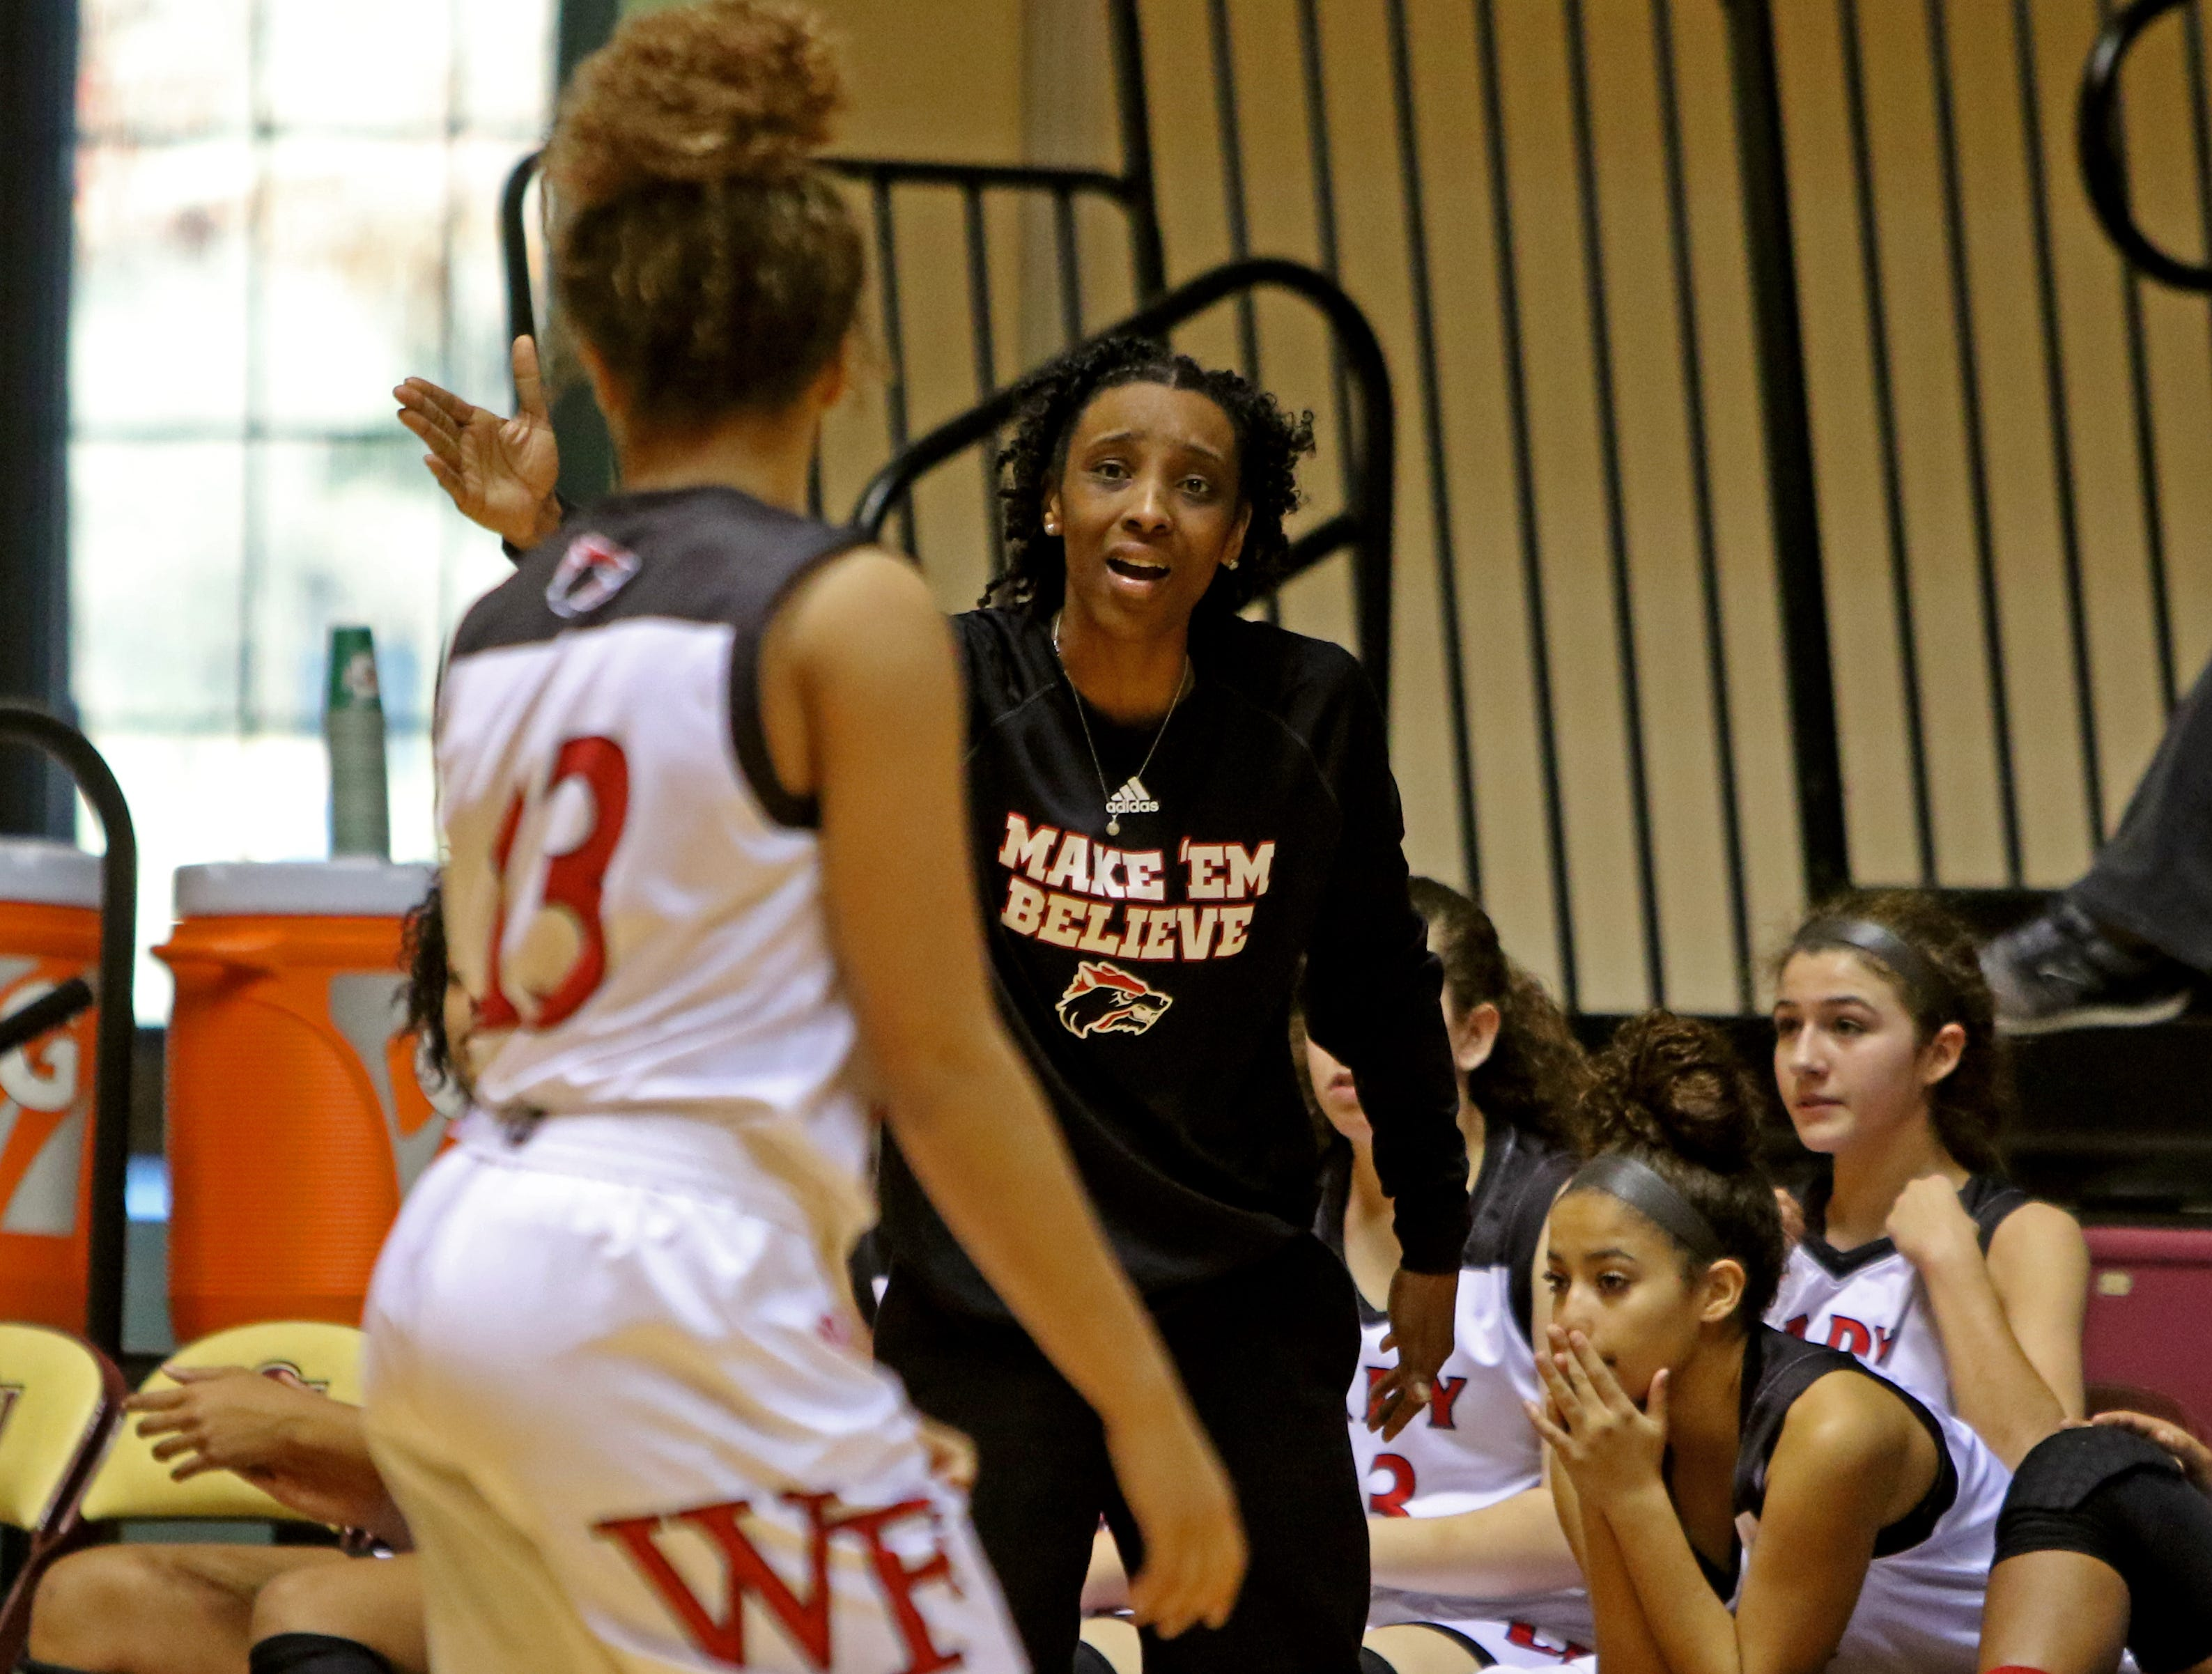 Wichita Falls High School head basketball coach Bri Brooks yells to her players in the game against Hirschi Saturday, Dec. 1, 2018, at D.L. Ligon Coliseum at Midwestern State University.